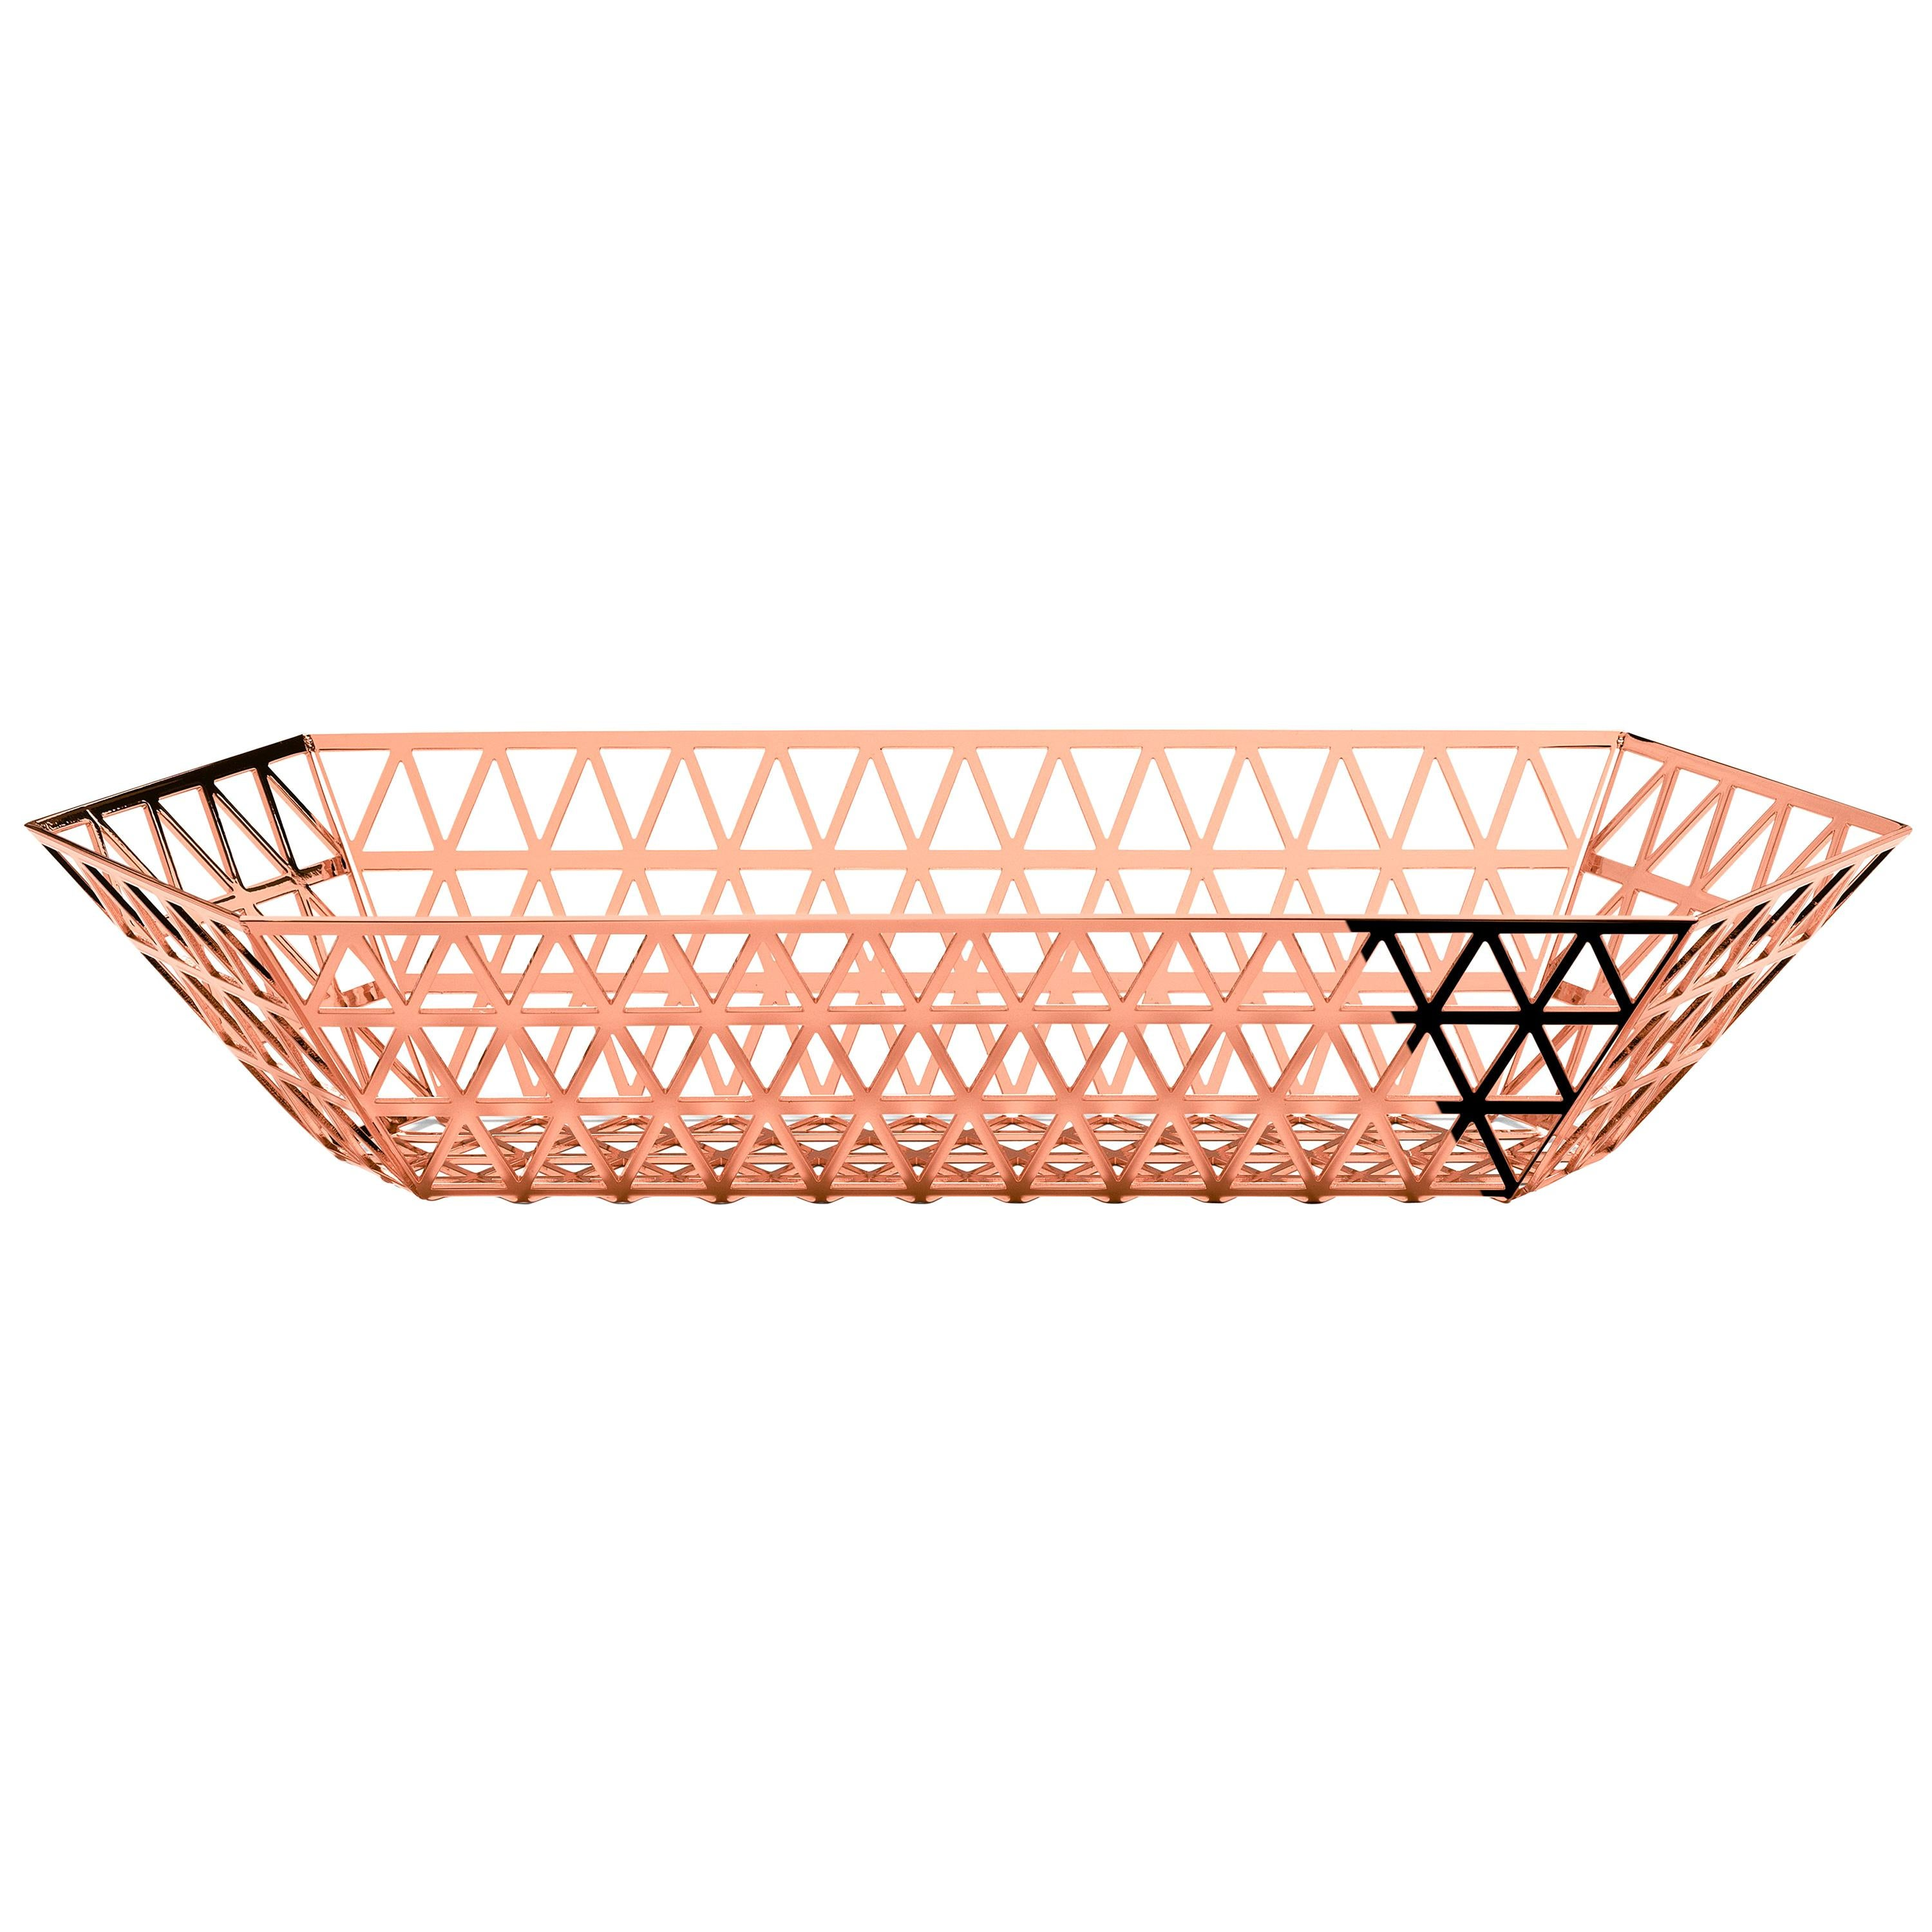 Ghidini 1961 Tip Top Limousine Tray in Rose Gold by Richard Hutten